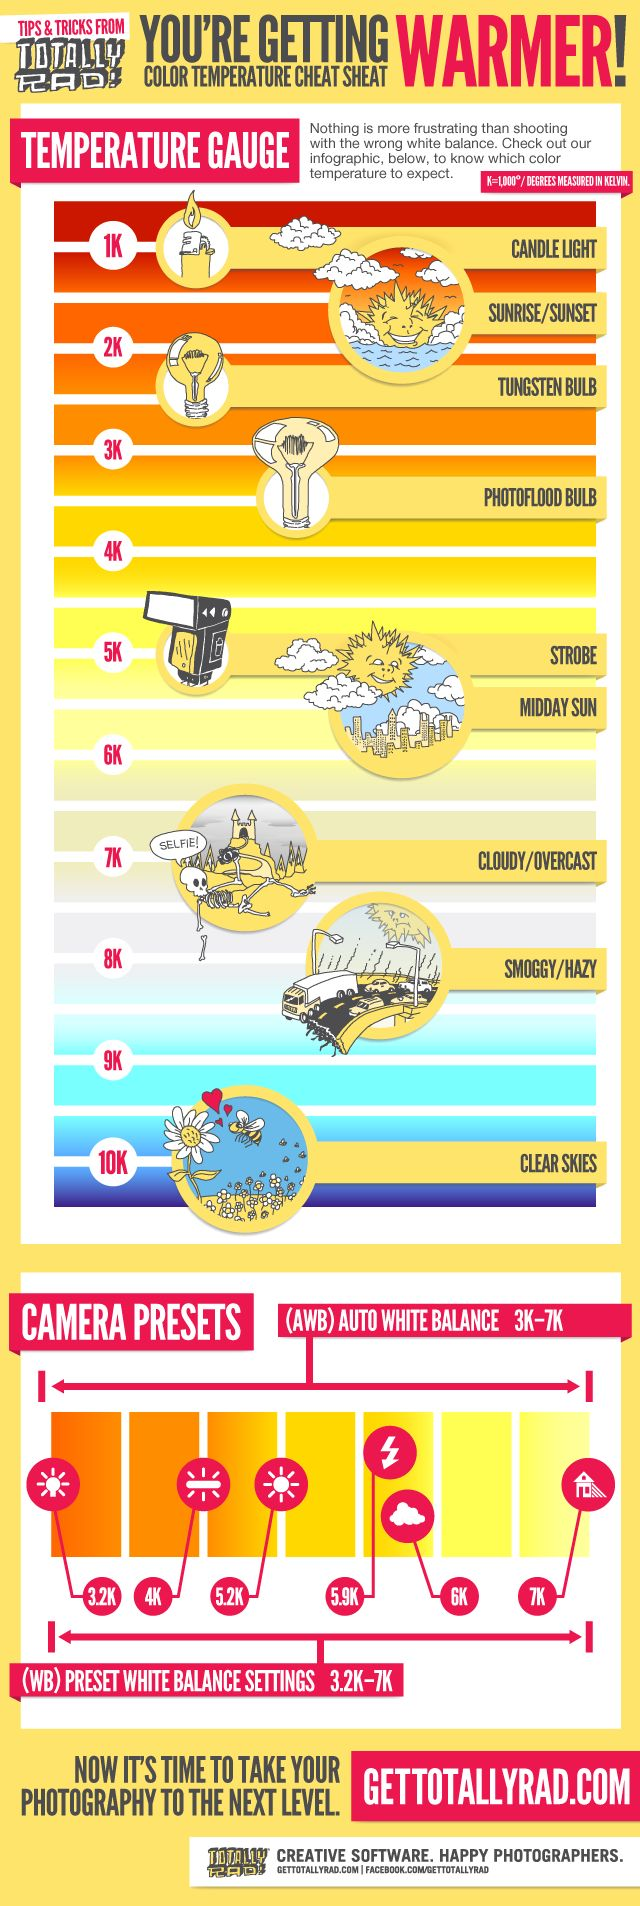 Great infographic from totally rad white balance cheat sheet